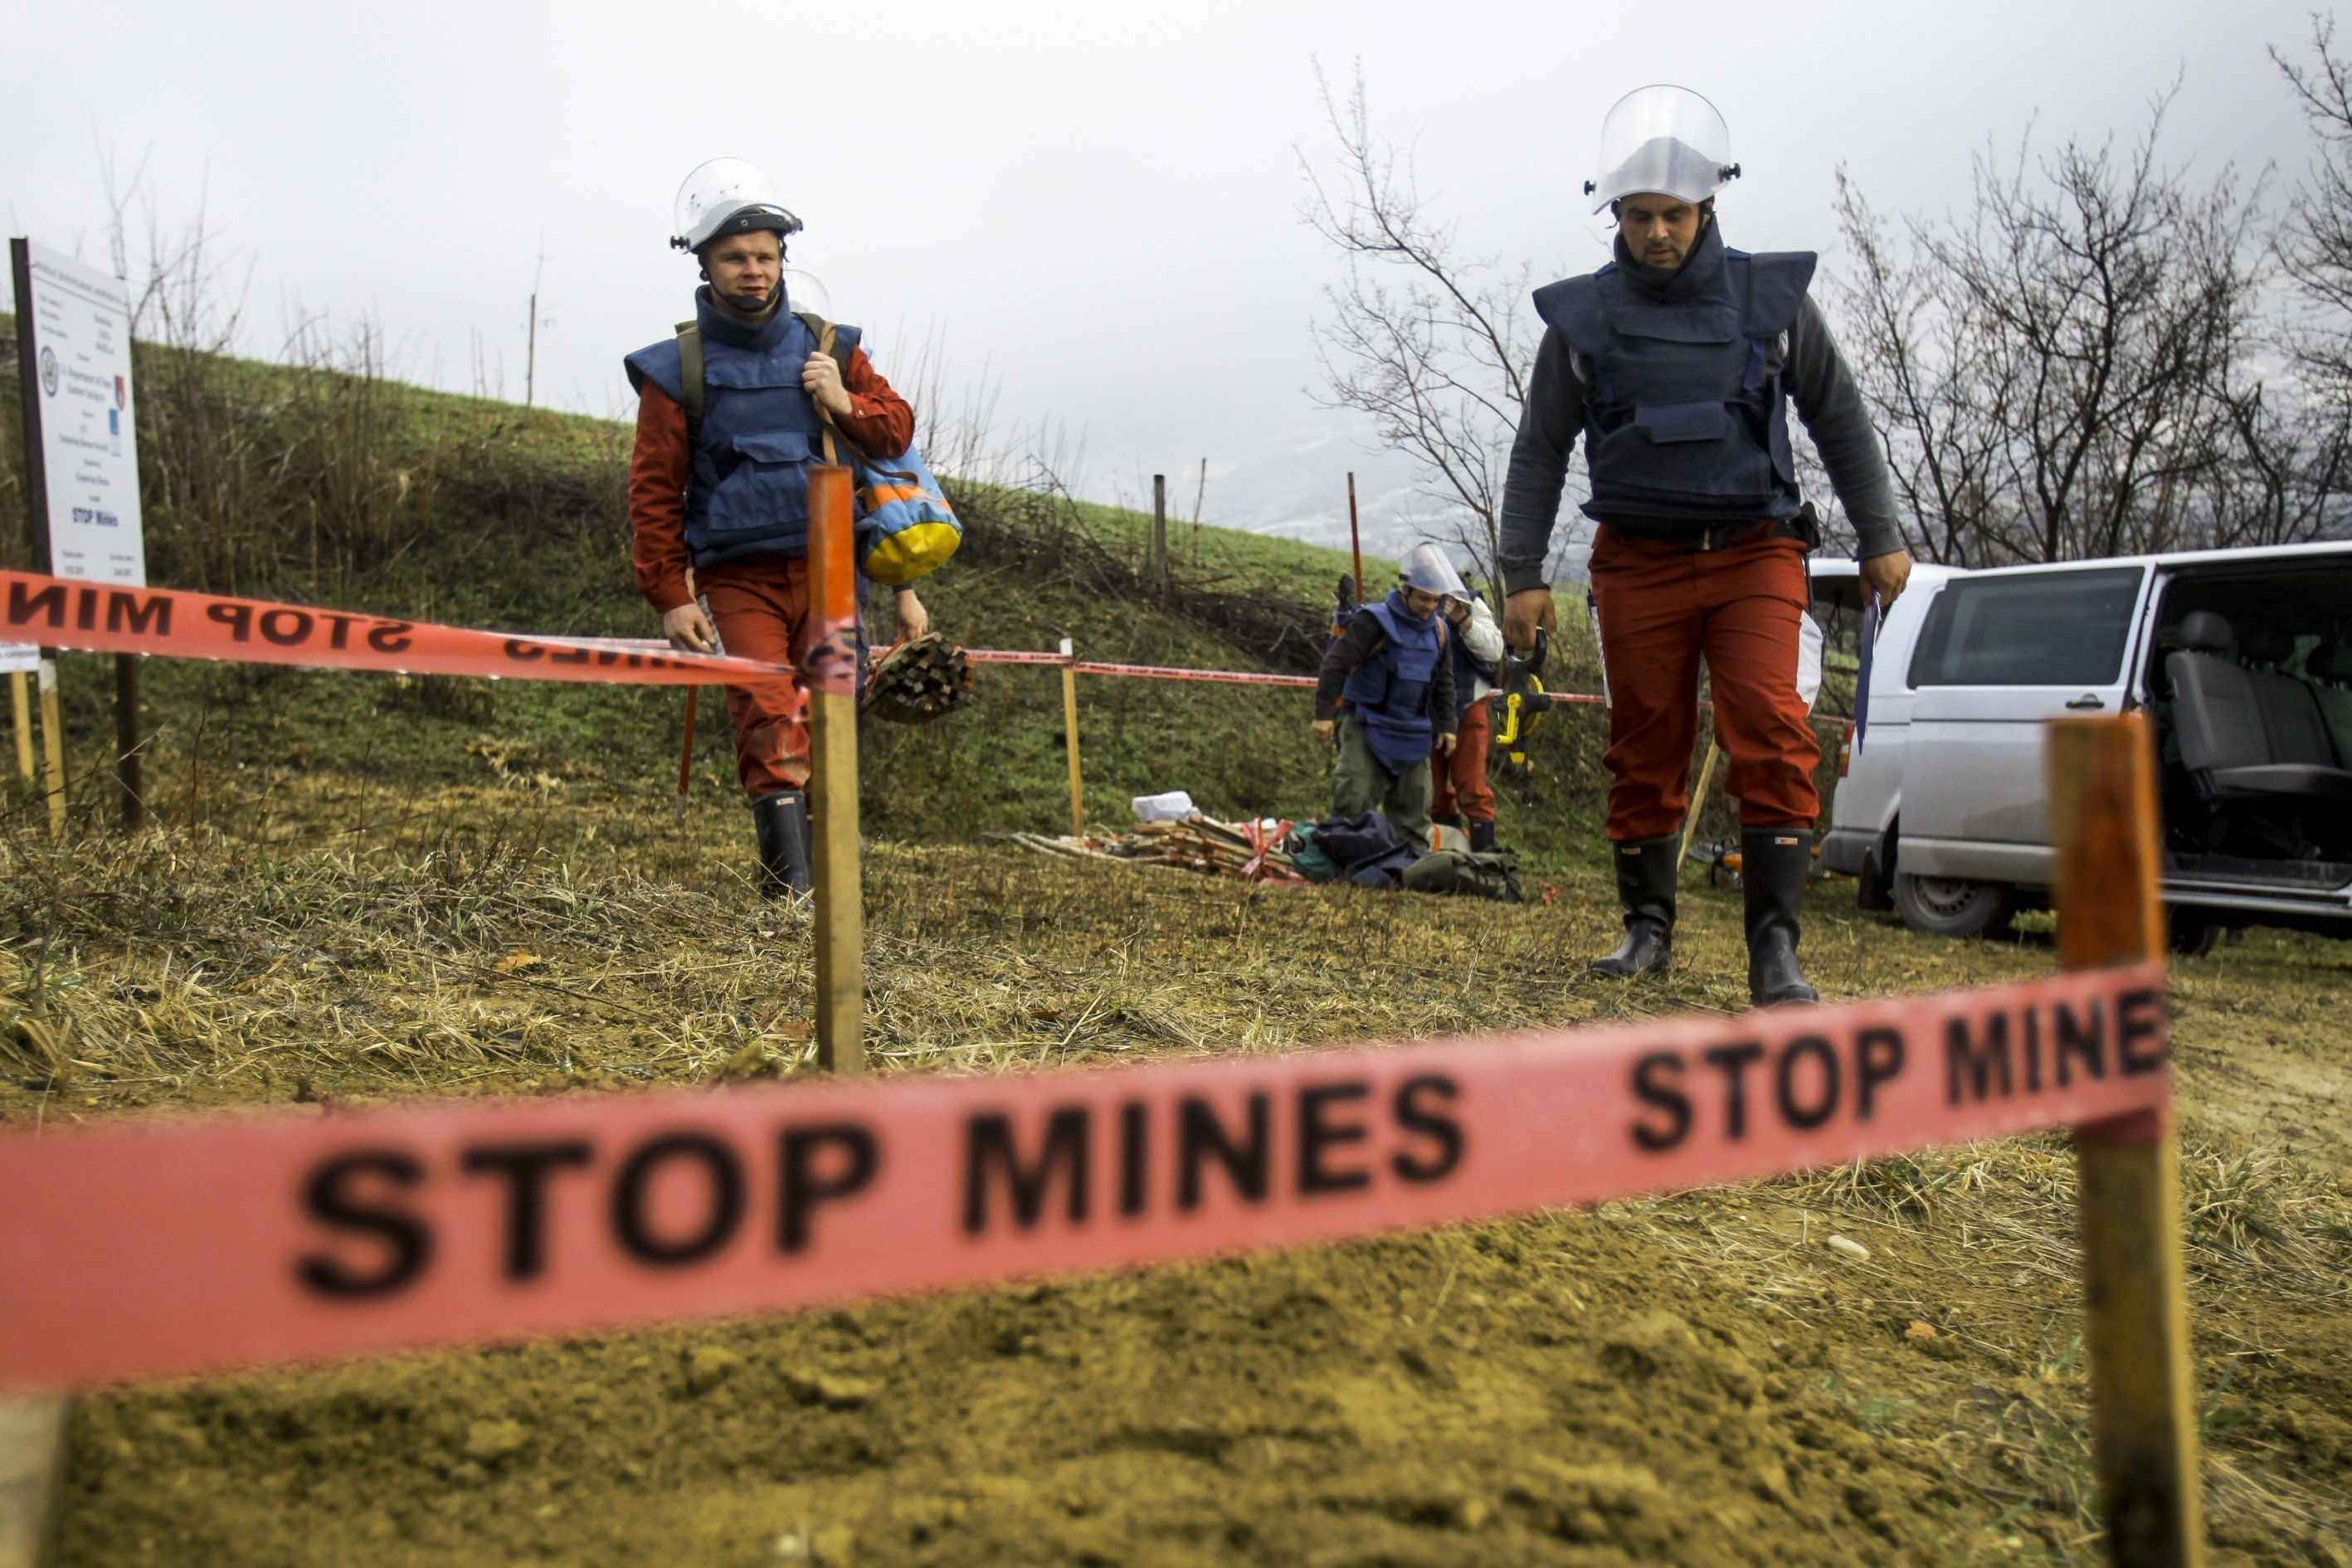 Members of Bosnia and Herzegovina Mine Action Centre (BHMAC) clear landmines at a minefield, in Sarajevo, Bosnia and Herzegovina on April 5, 2015